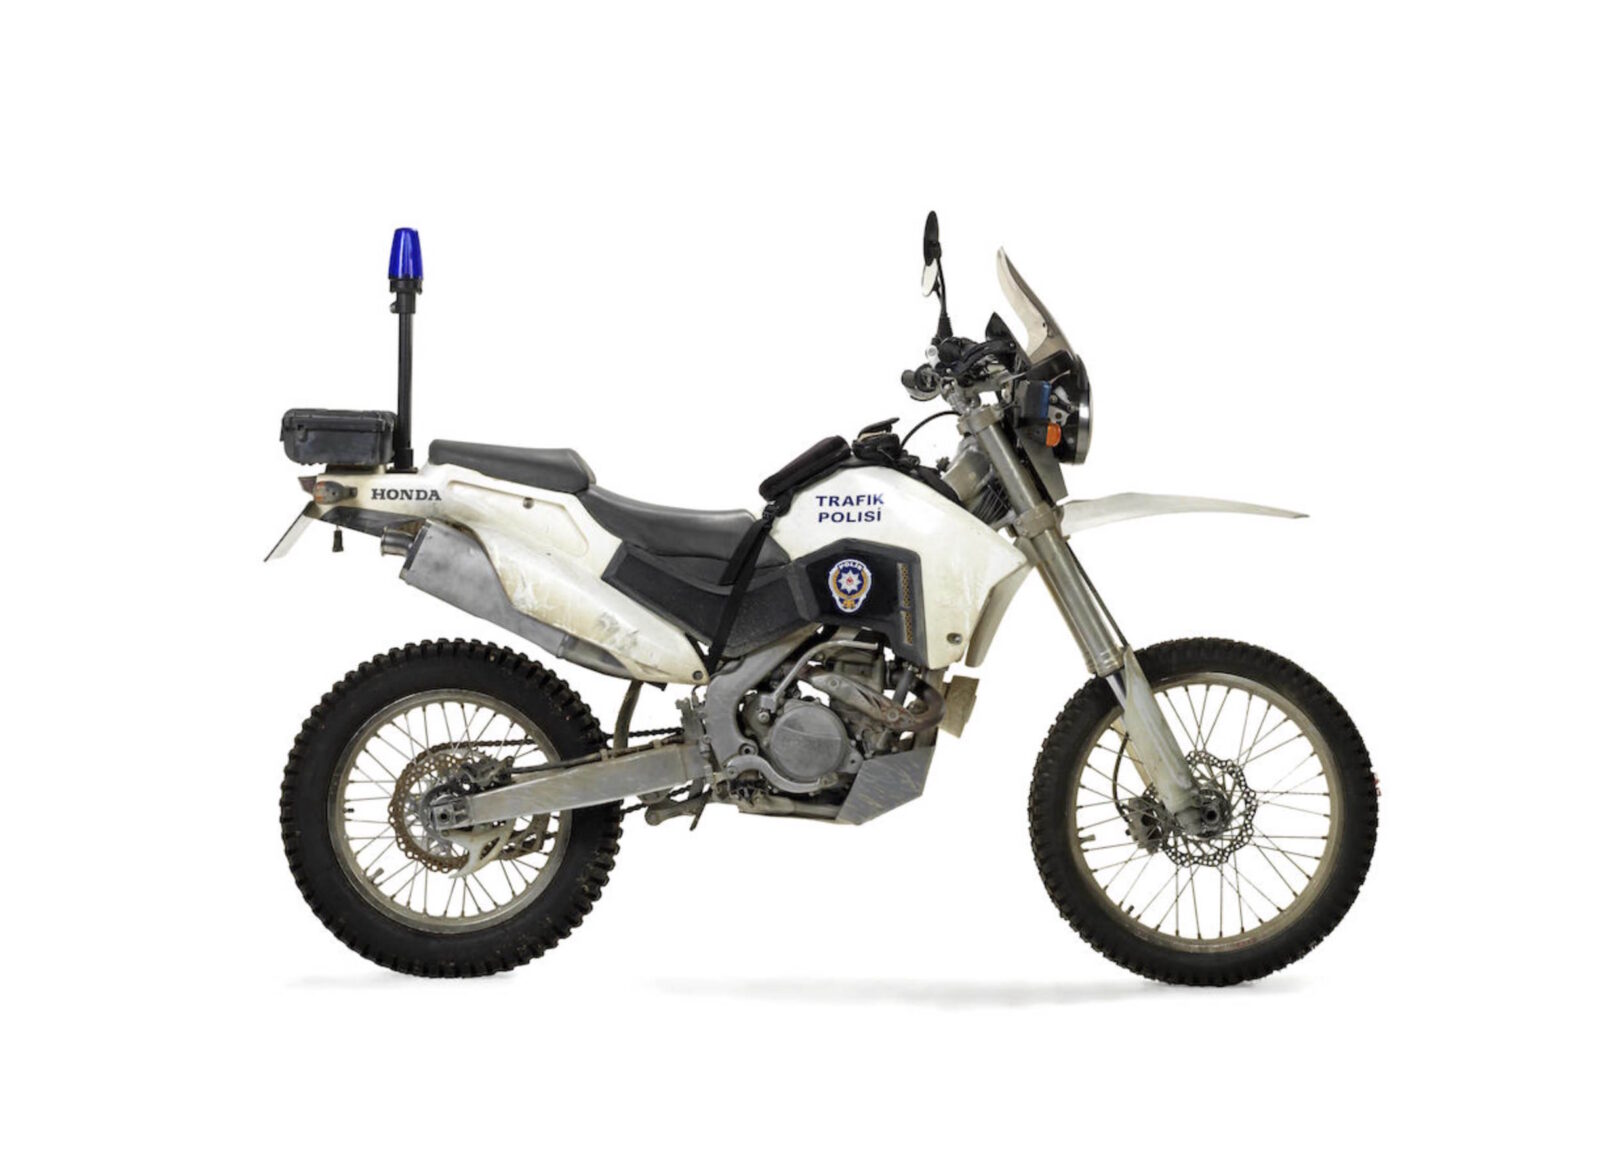 Honda CRF250R Motorcycle Skyfall James Bond 1600x1153 - James Bond / Skyfall Honda CRF250R